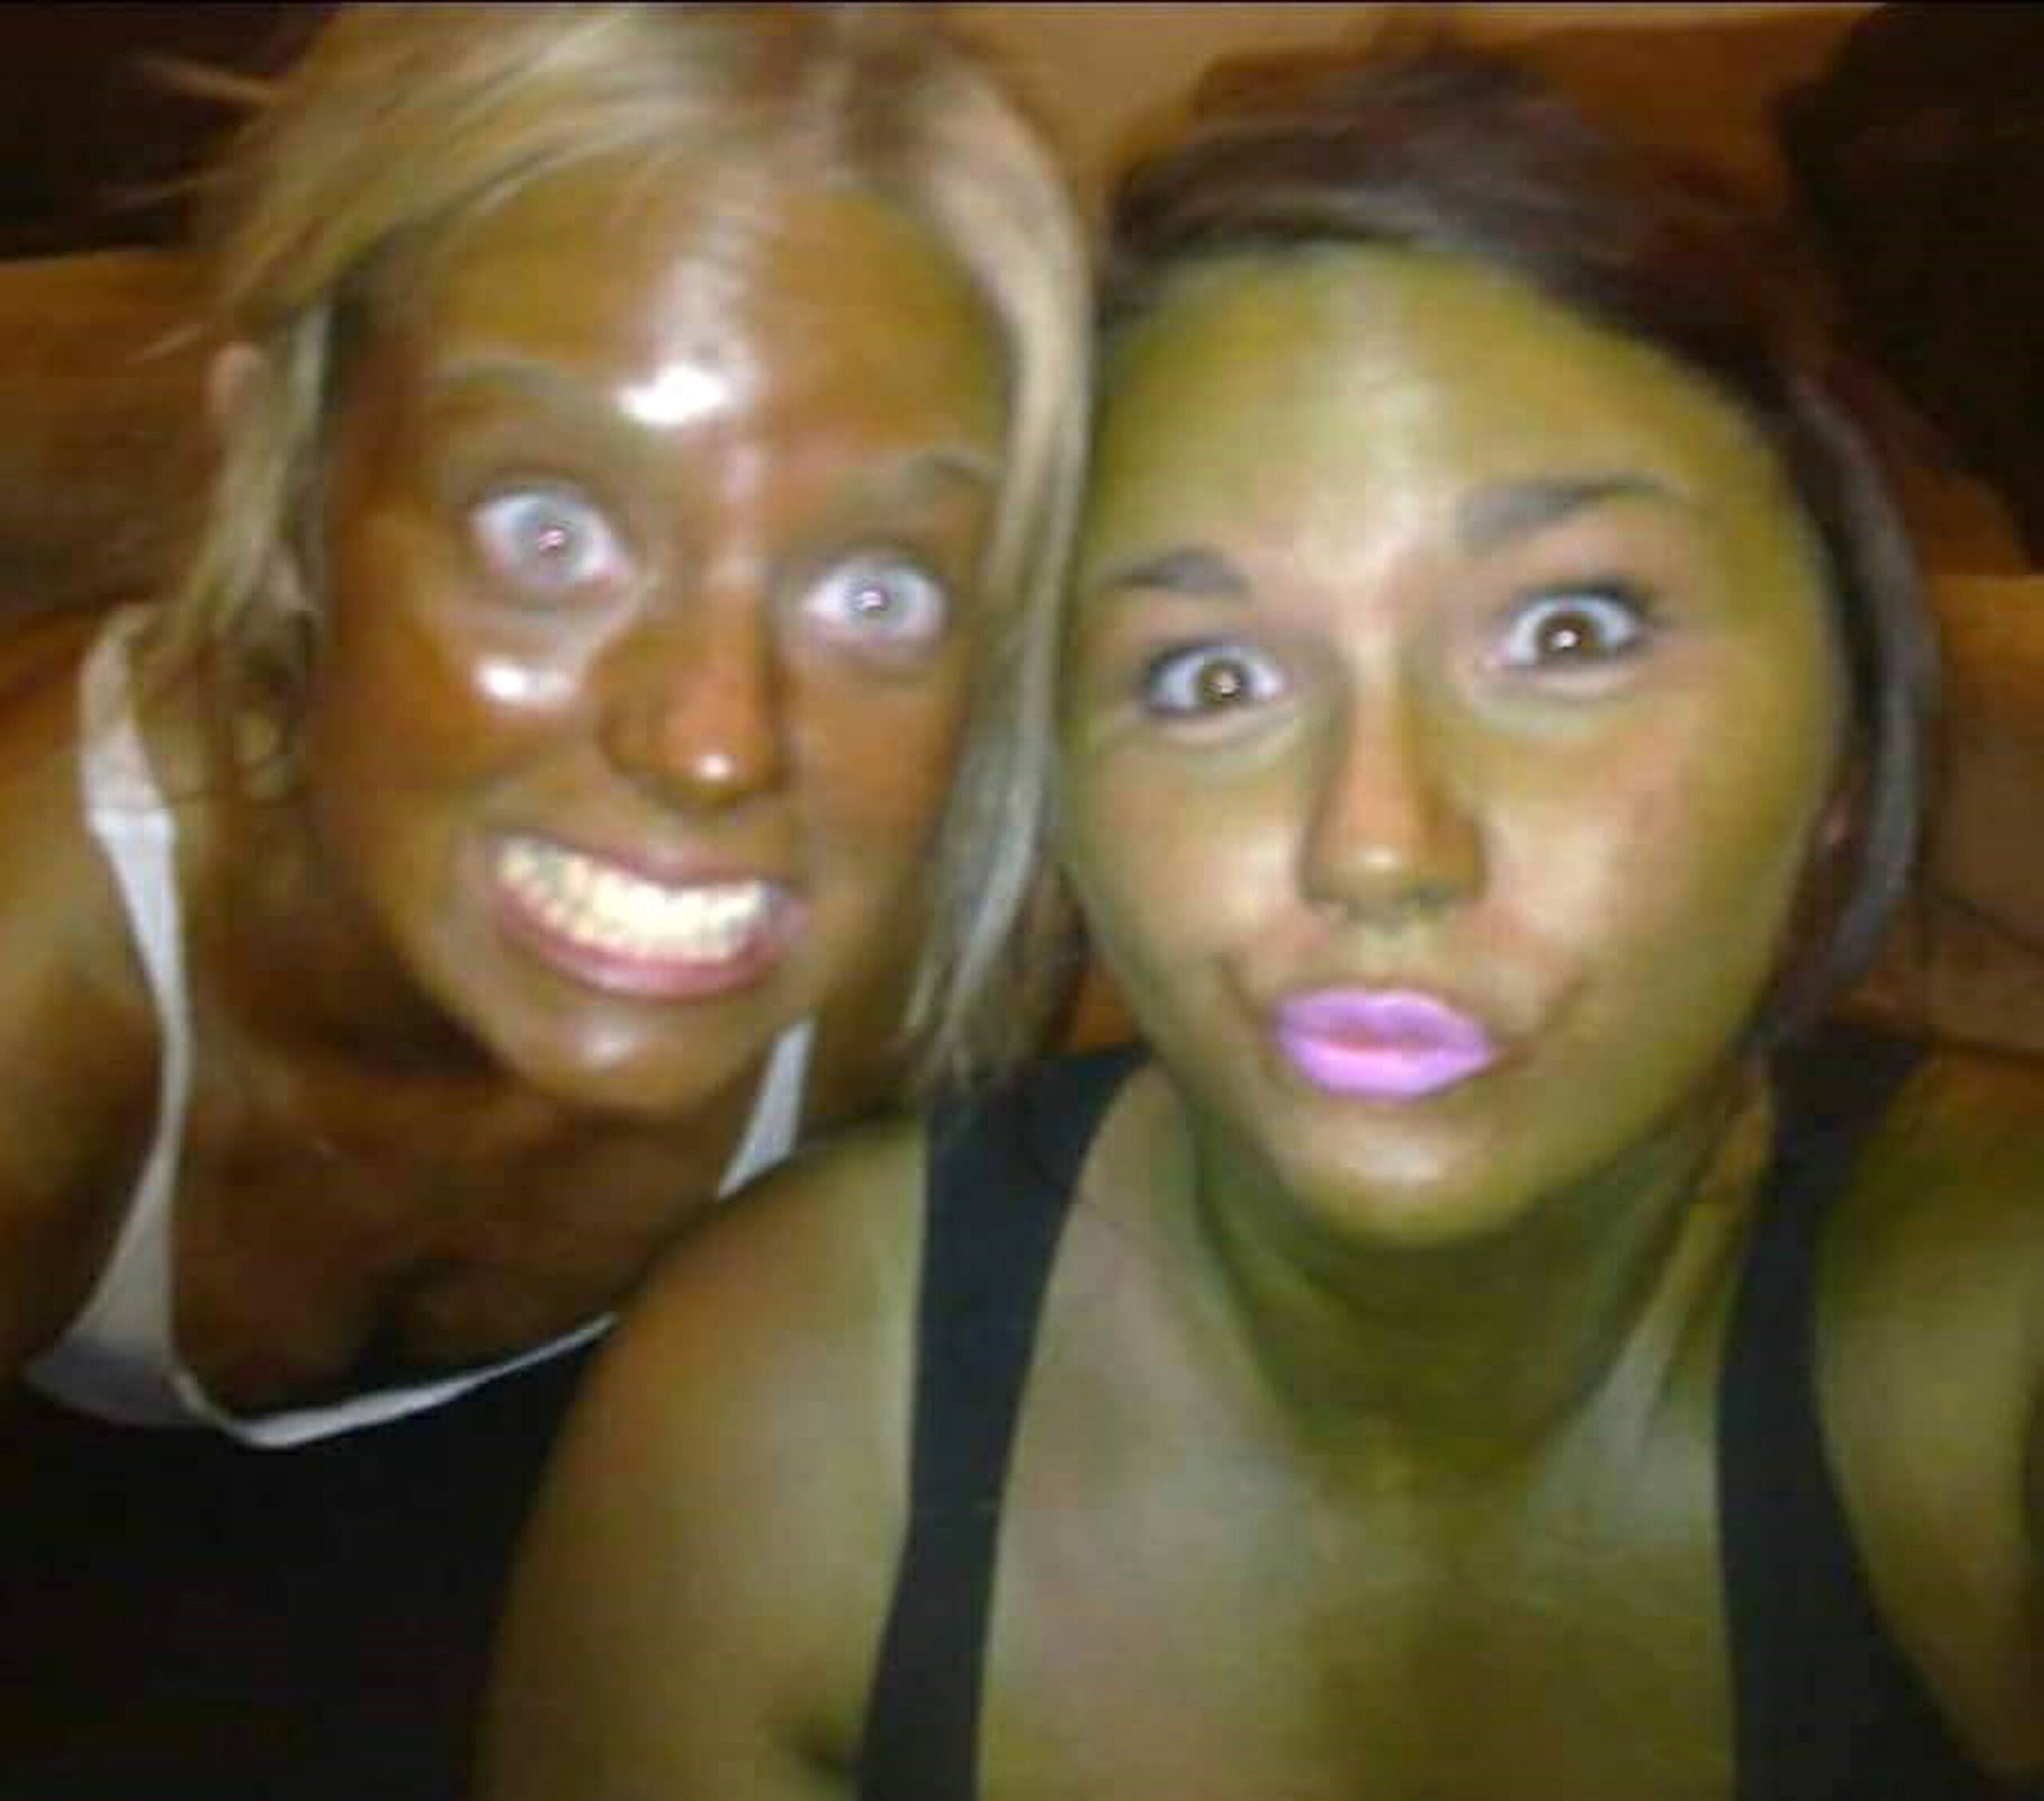 CLUB GIGGLE NINTCHDBPICT000425425952-scaled Top 20 Spray Tan Fails That Will Give You Nightmares